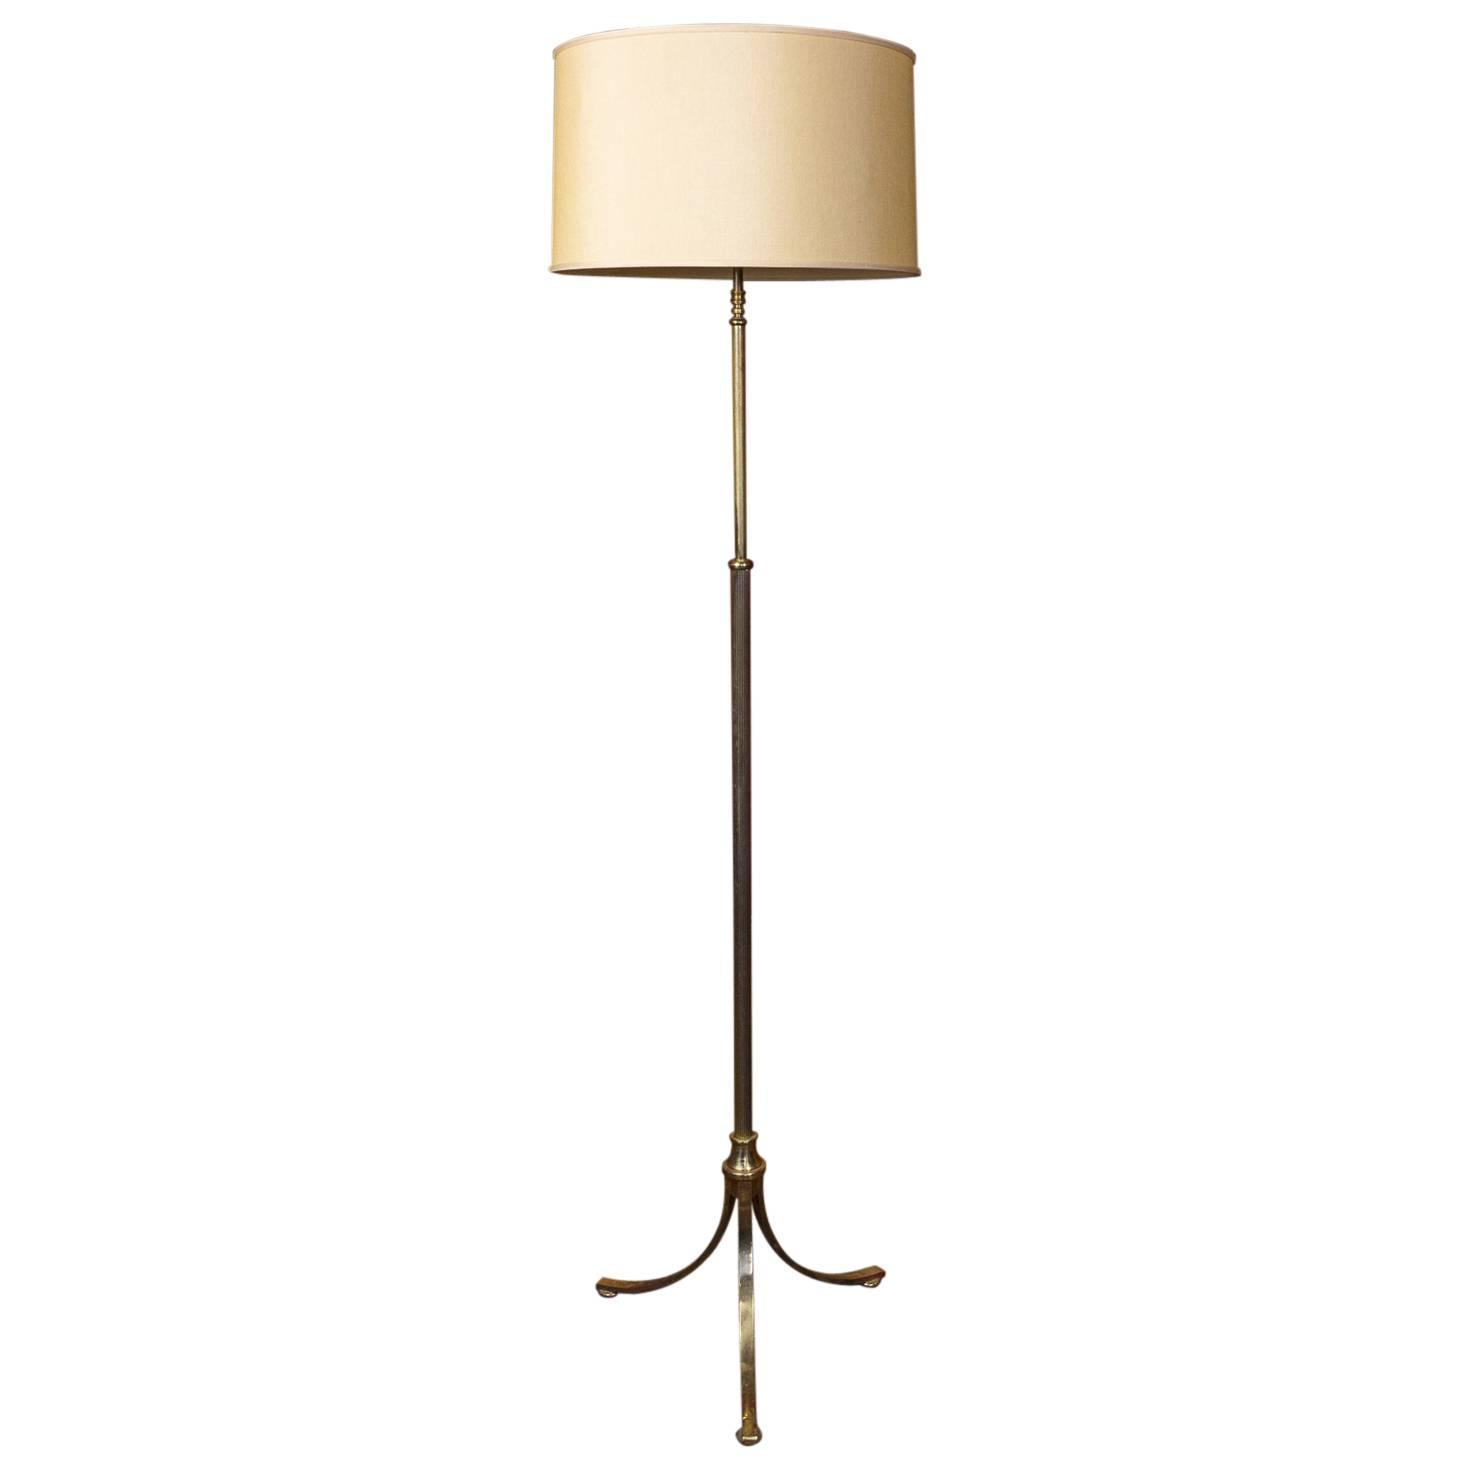 1940s french brass floor lamp at 1stdibs for Milan floor lamp antique brass 165cm